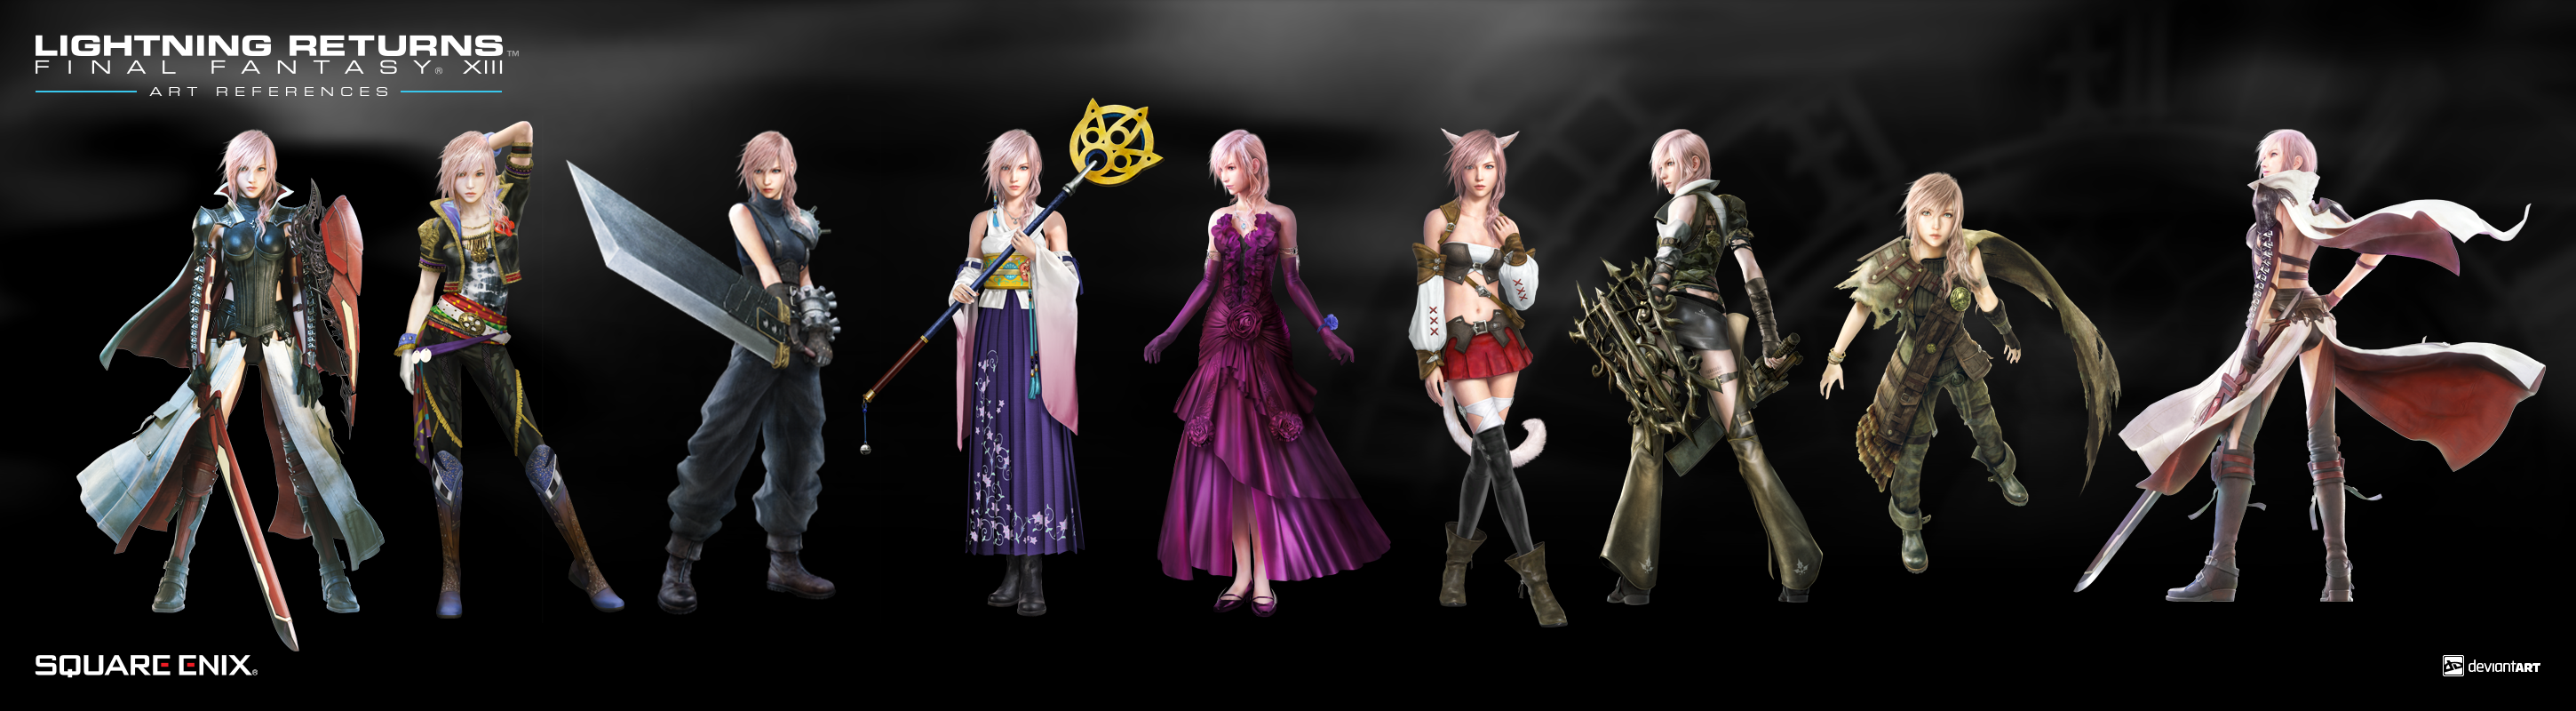 FFXIII_art-reference_1.png